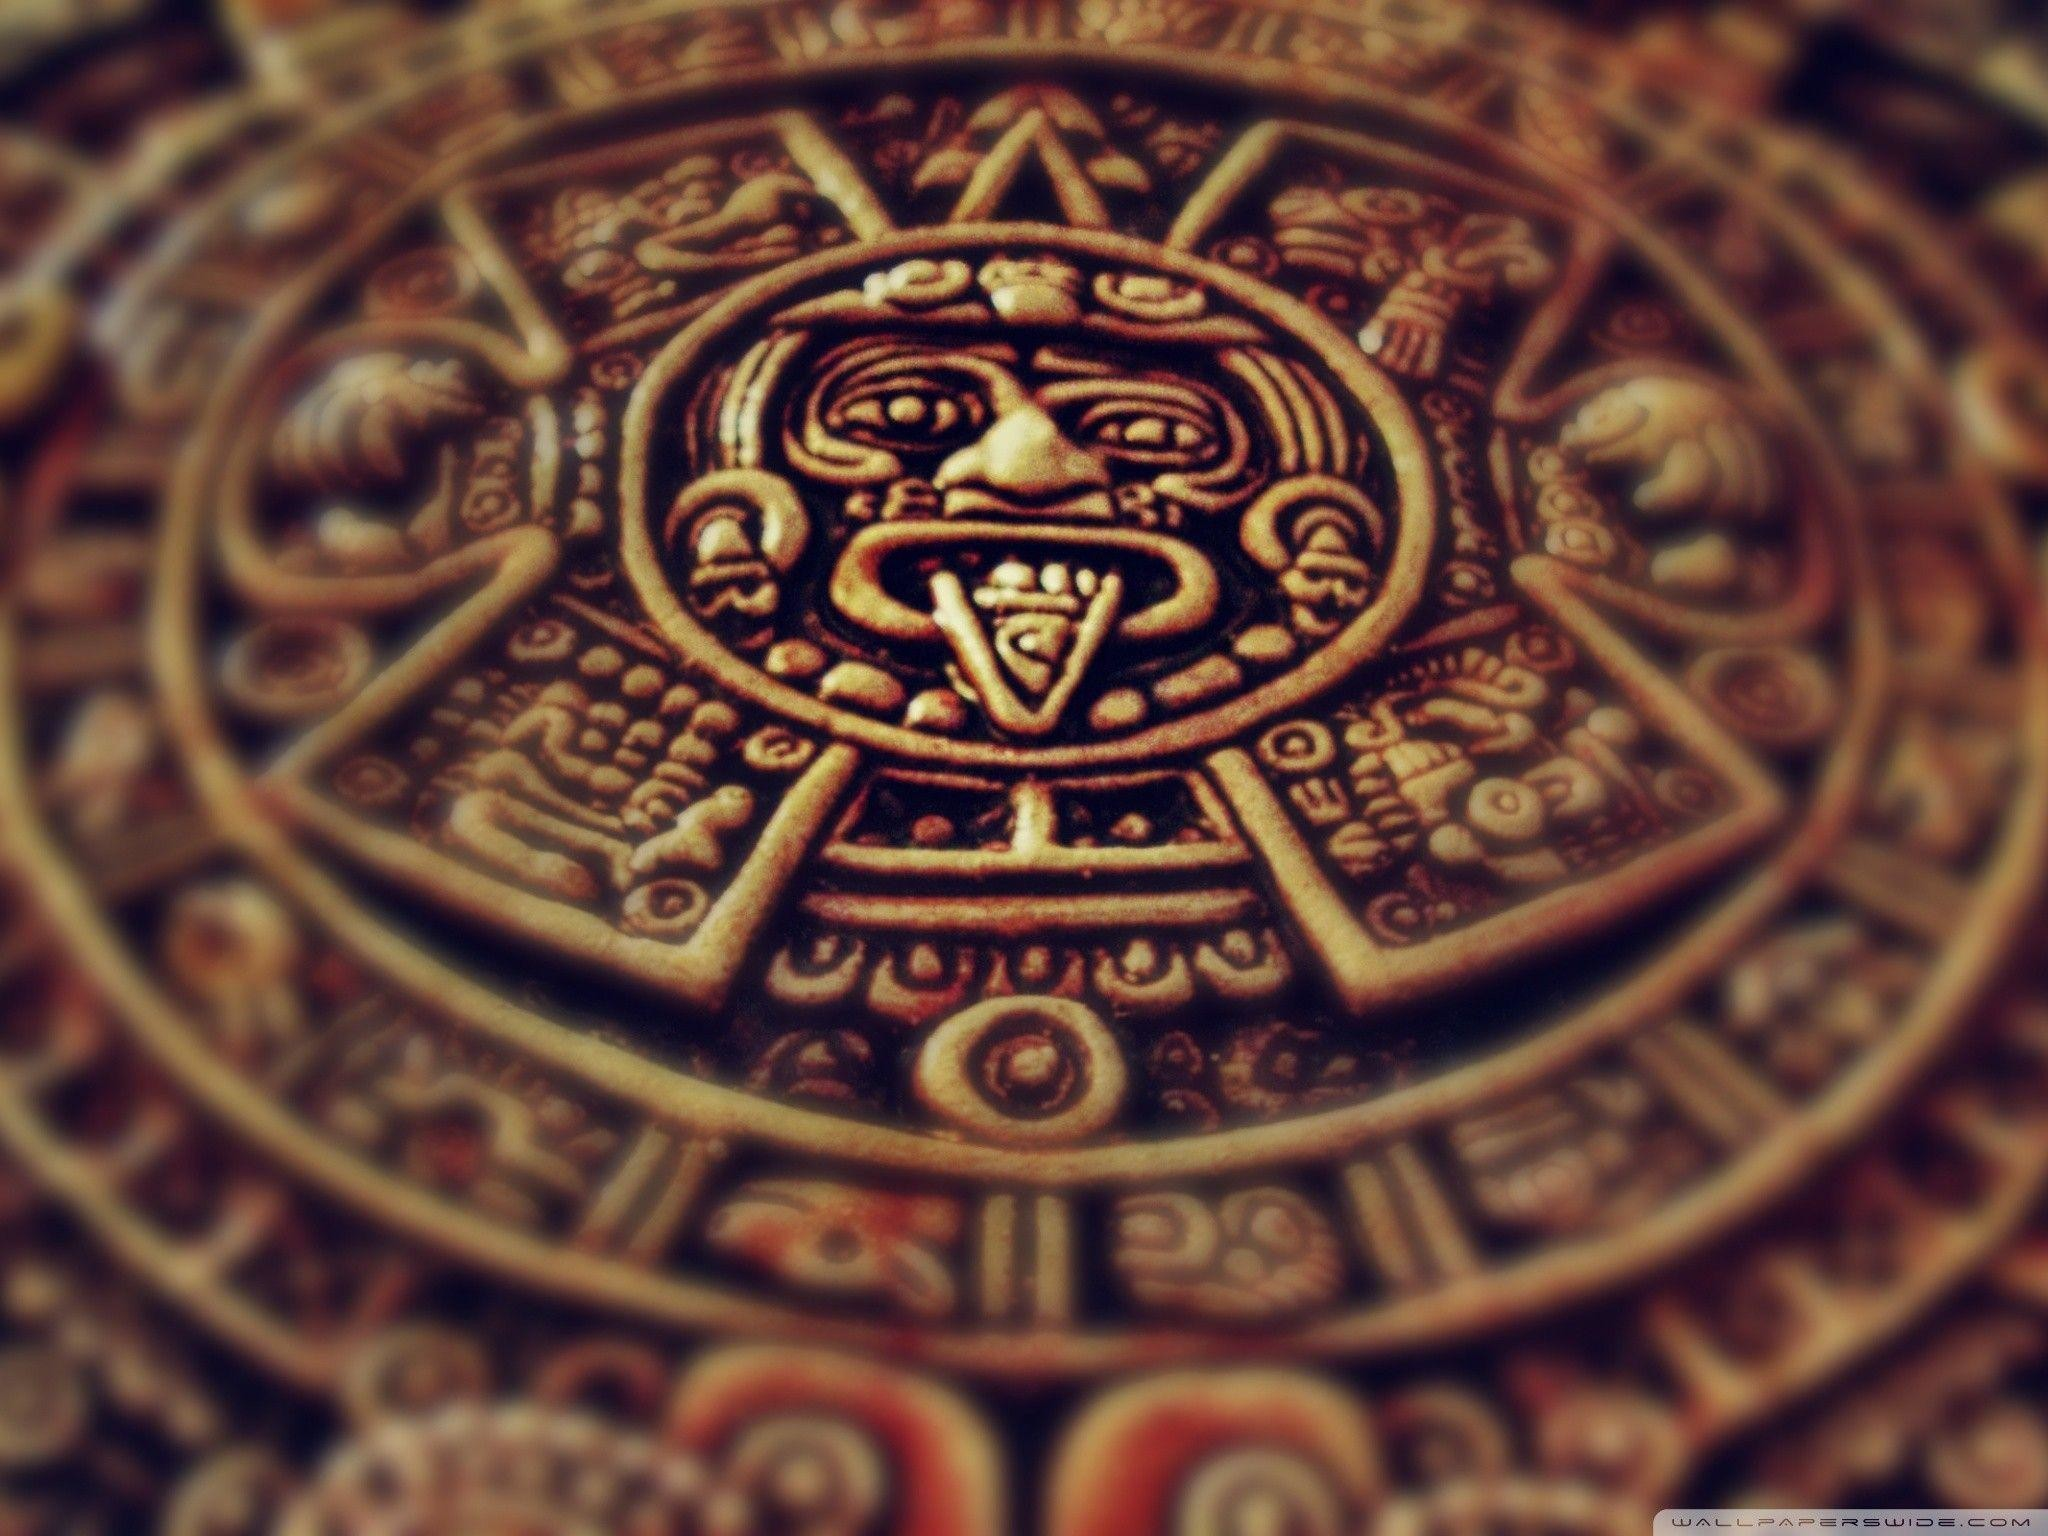 2048x1536 The Images of Aztec Aztec Calendar Stone Fresh HD Wallpaper .